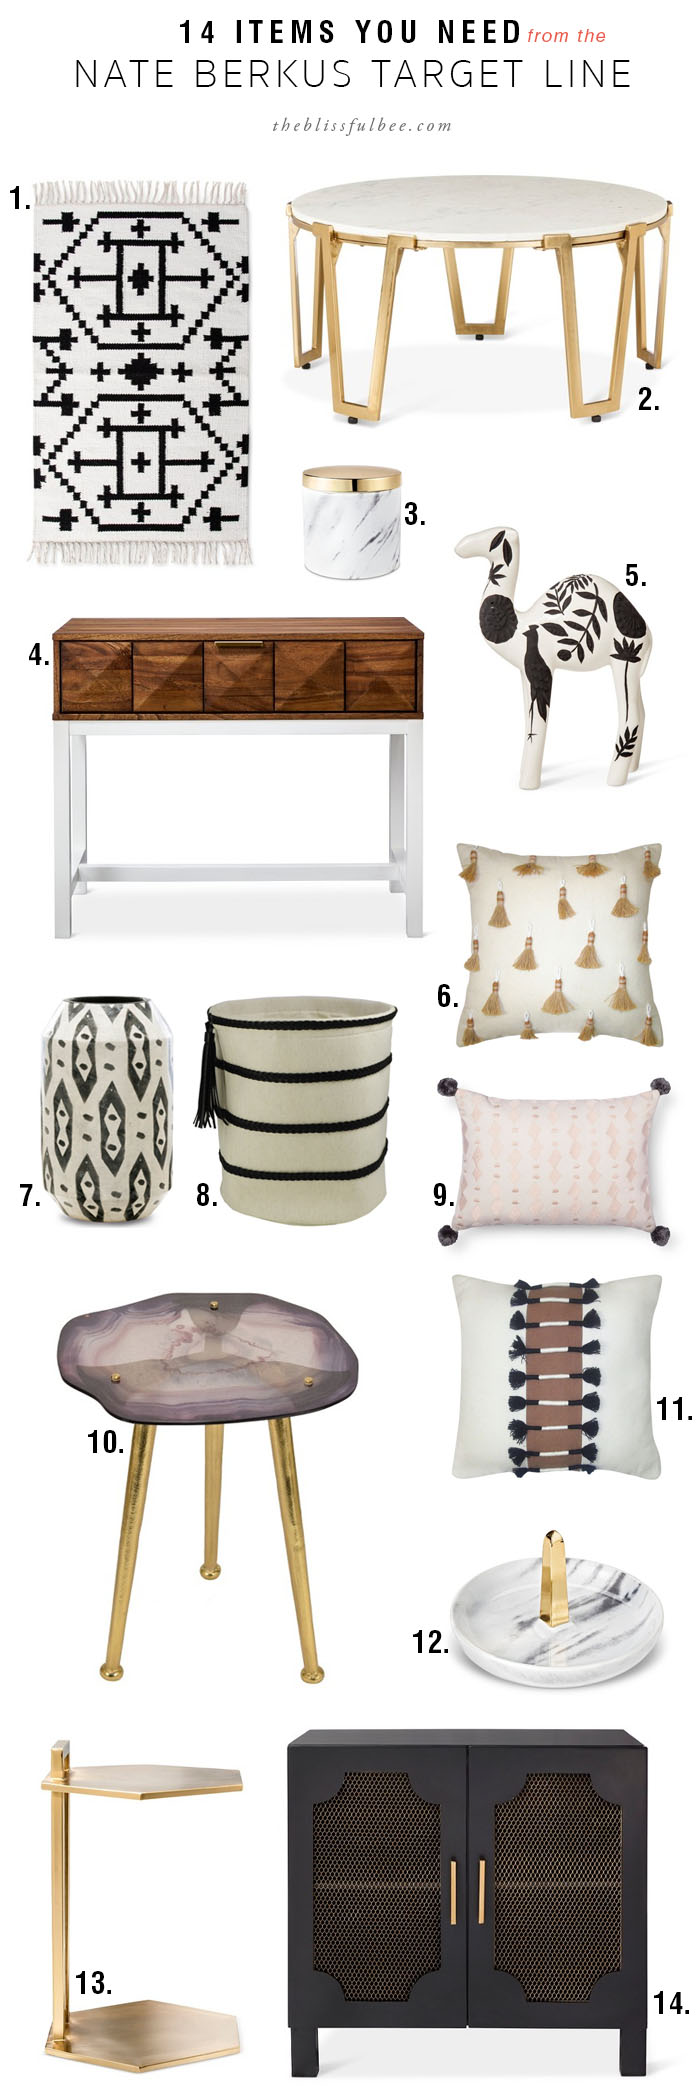 items you need from the nate berkus target line blissful nateburkustargetline glass agate accent table black white classic rug stackable tables rattan antique living room